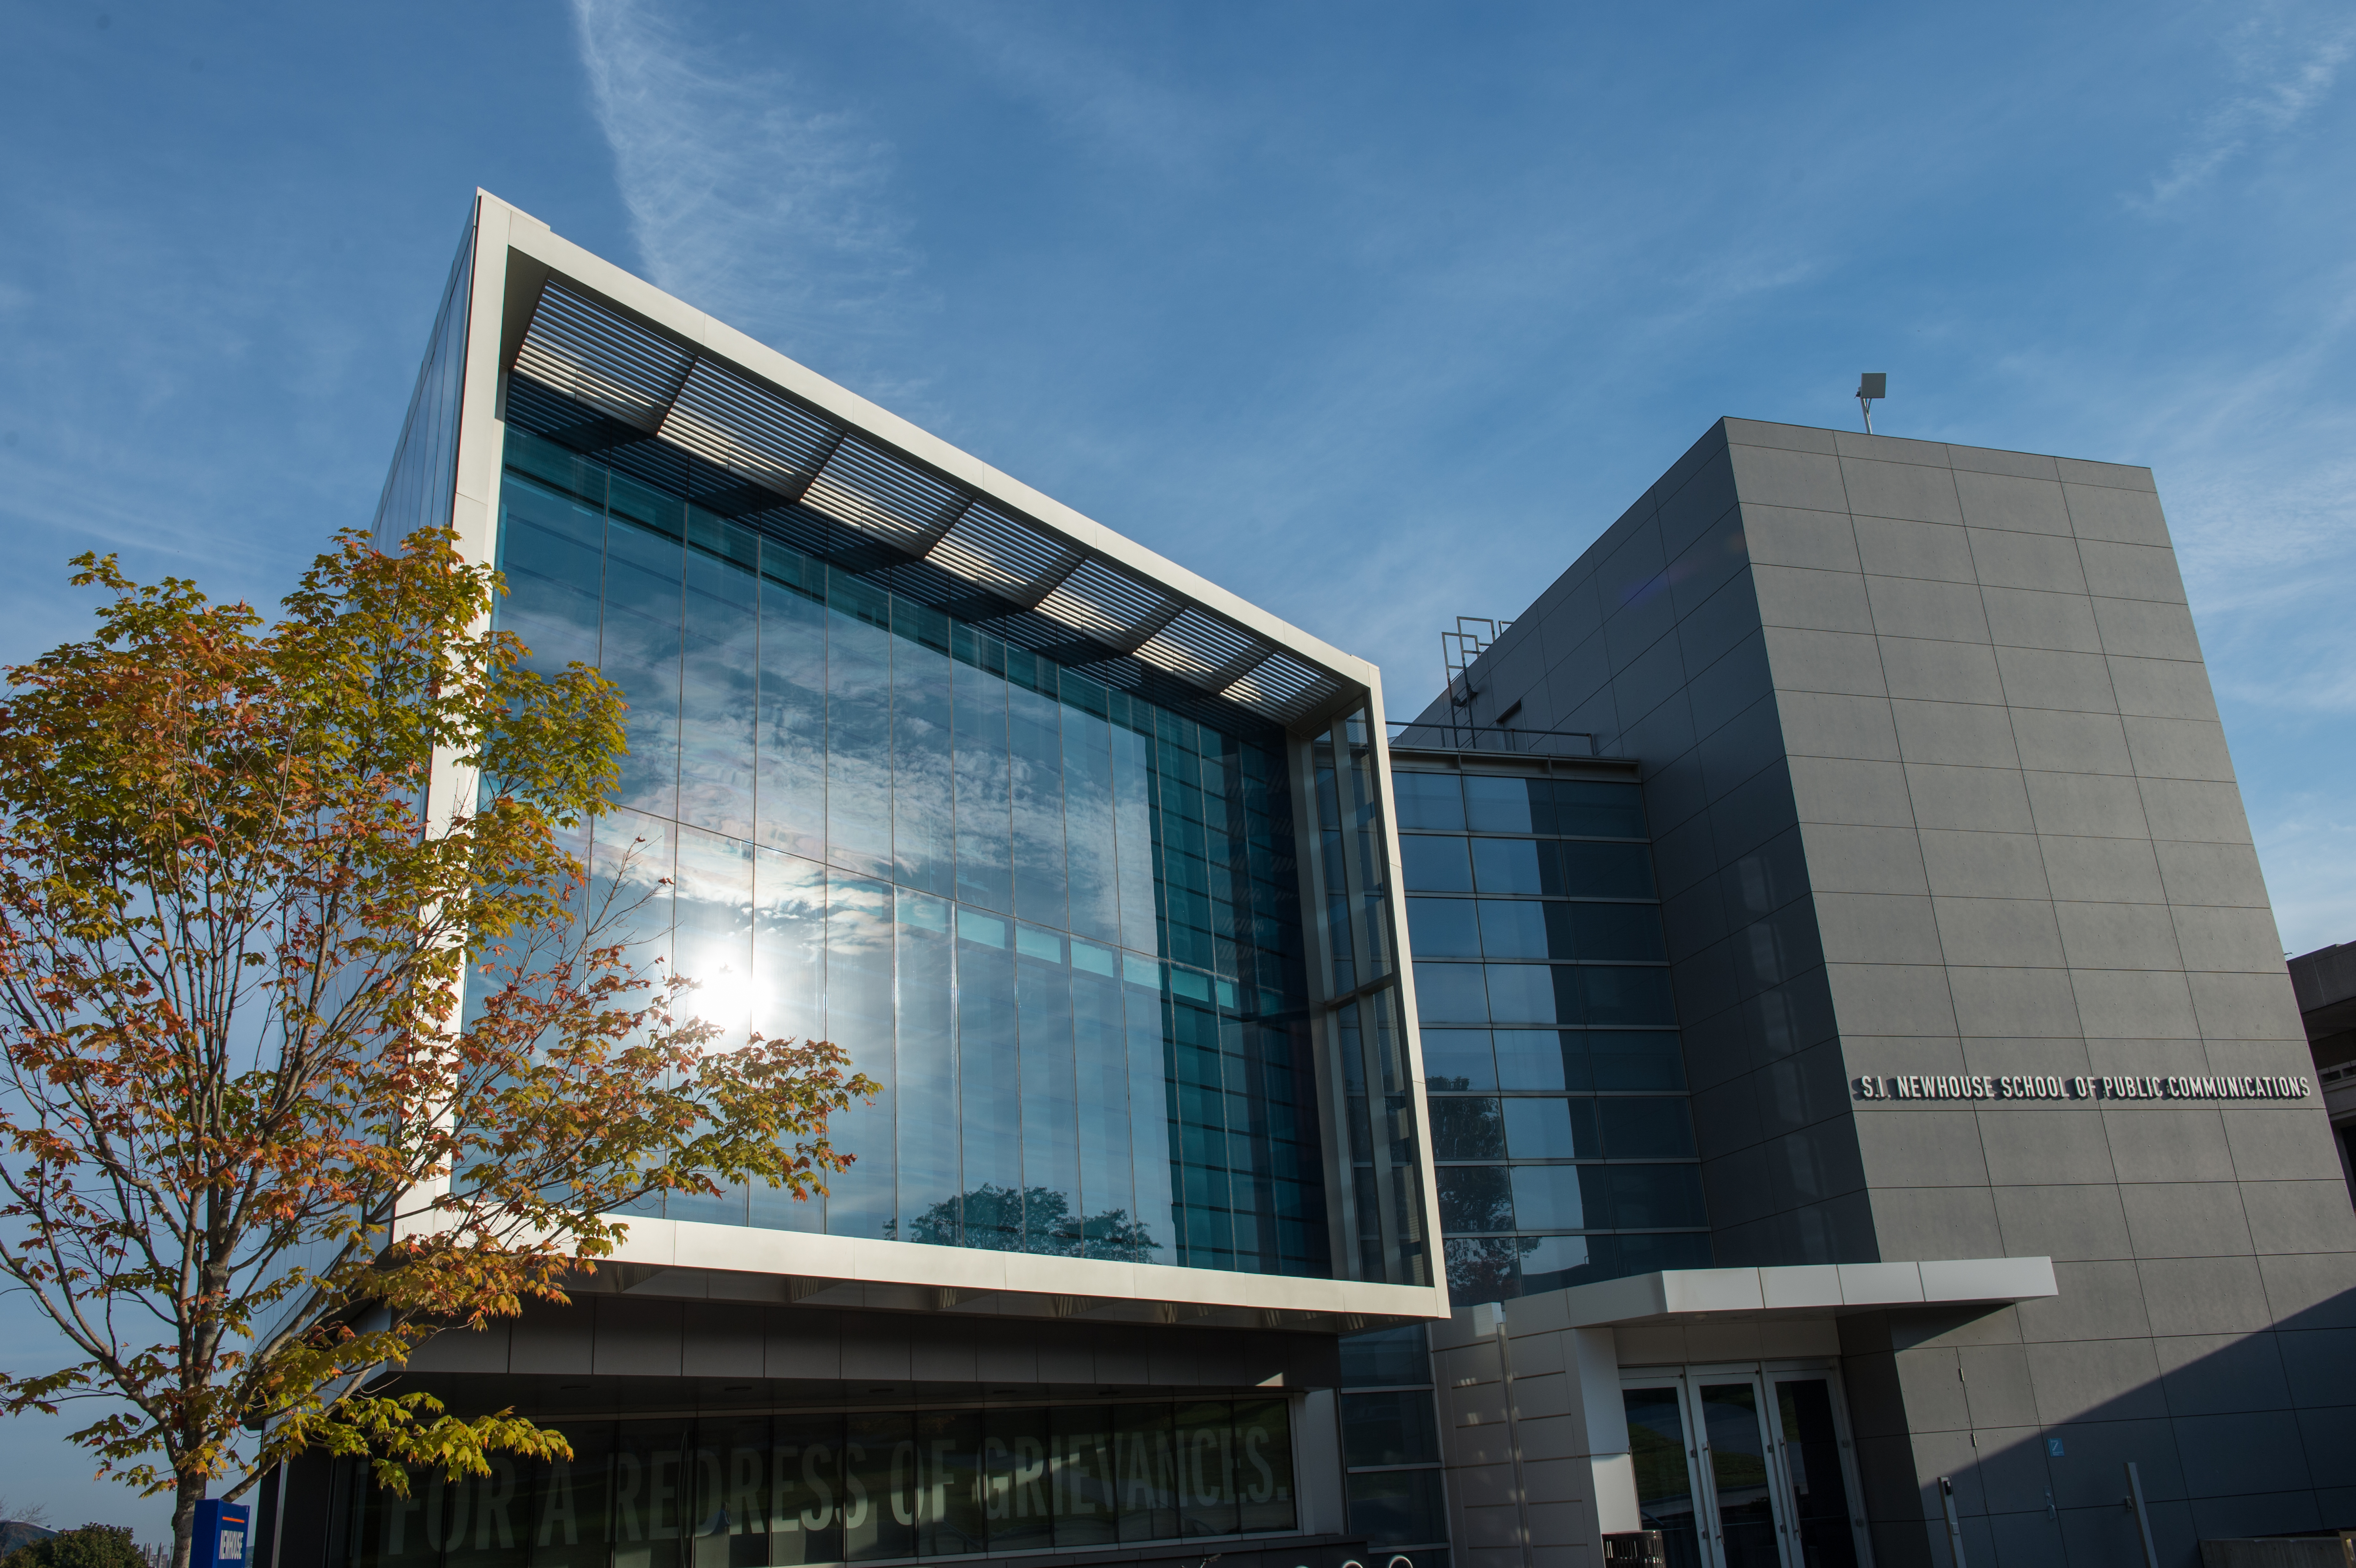 The S.I. Newhouse School of Public Communications.